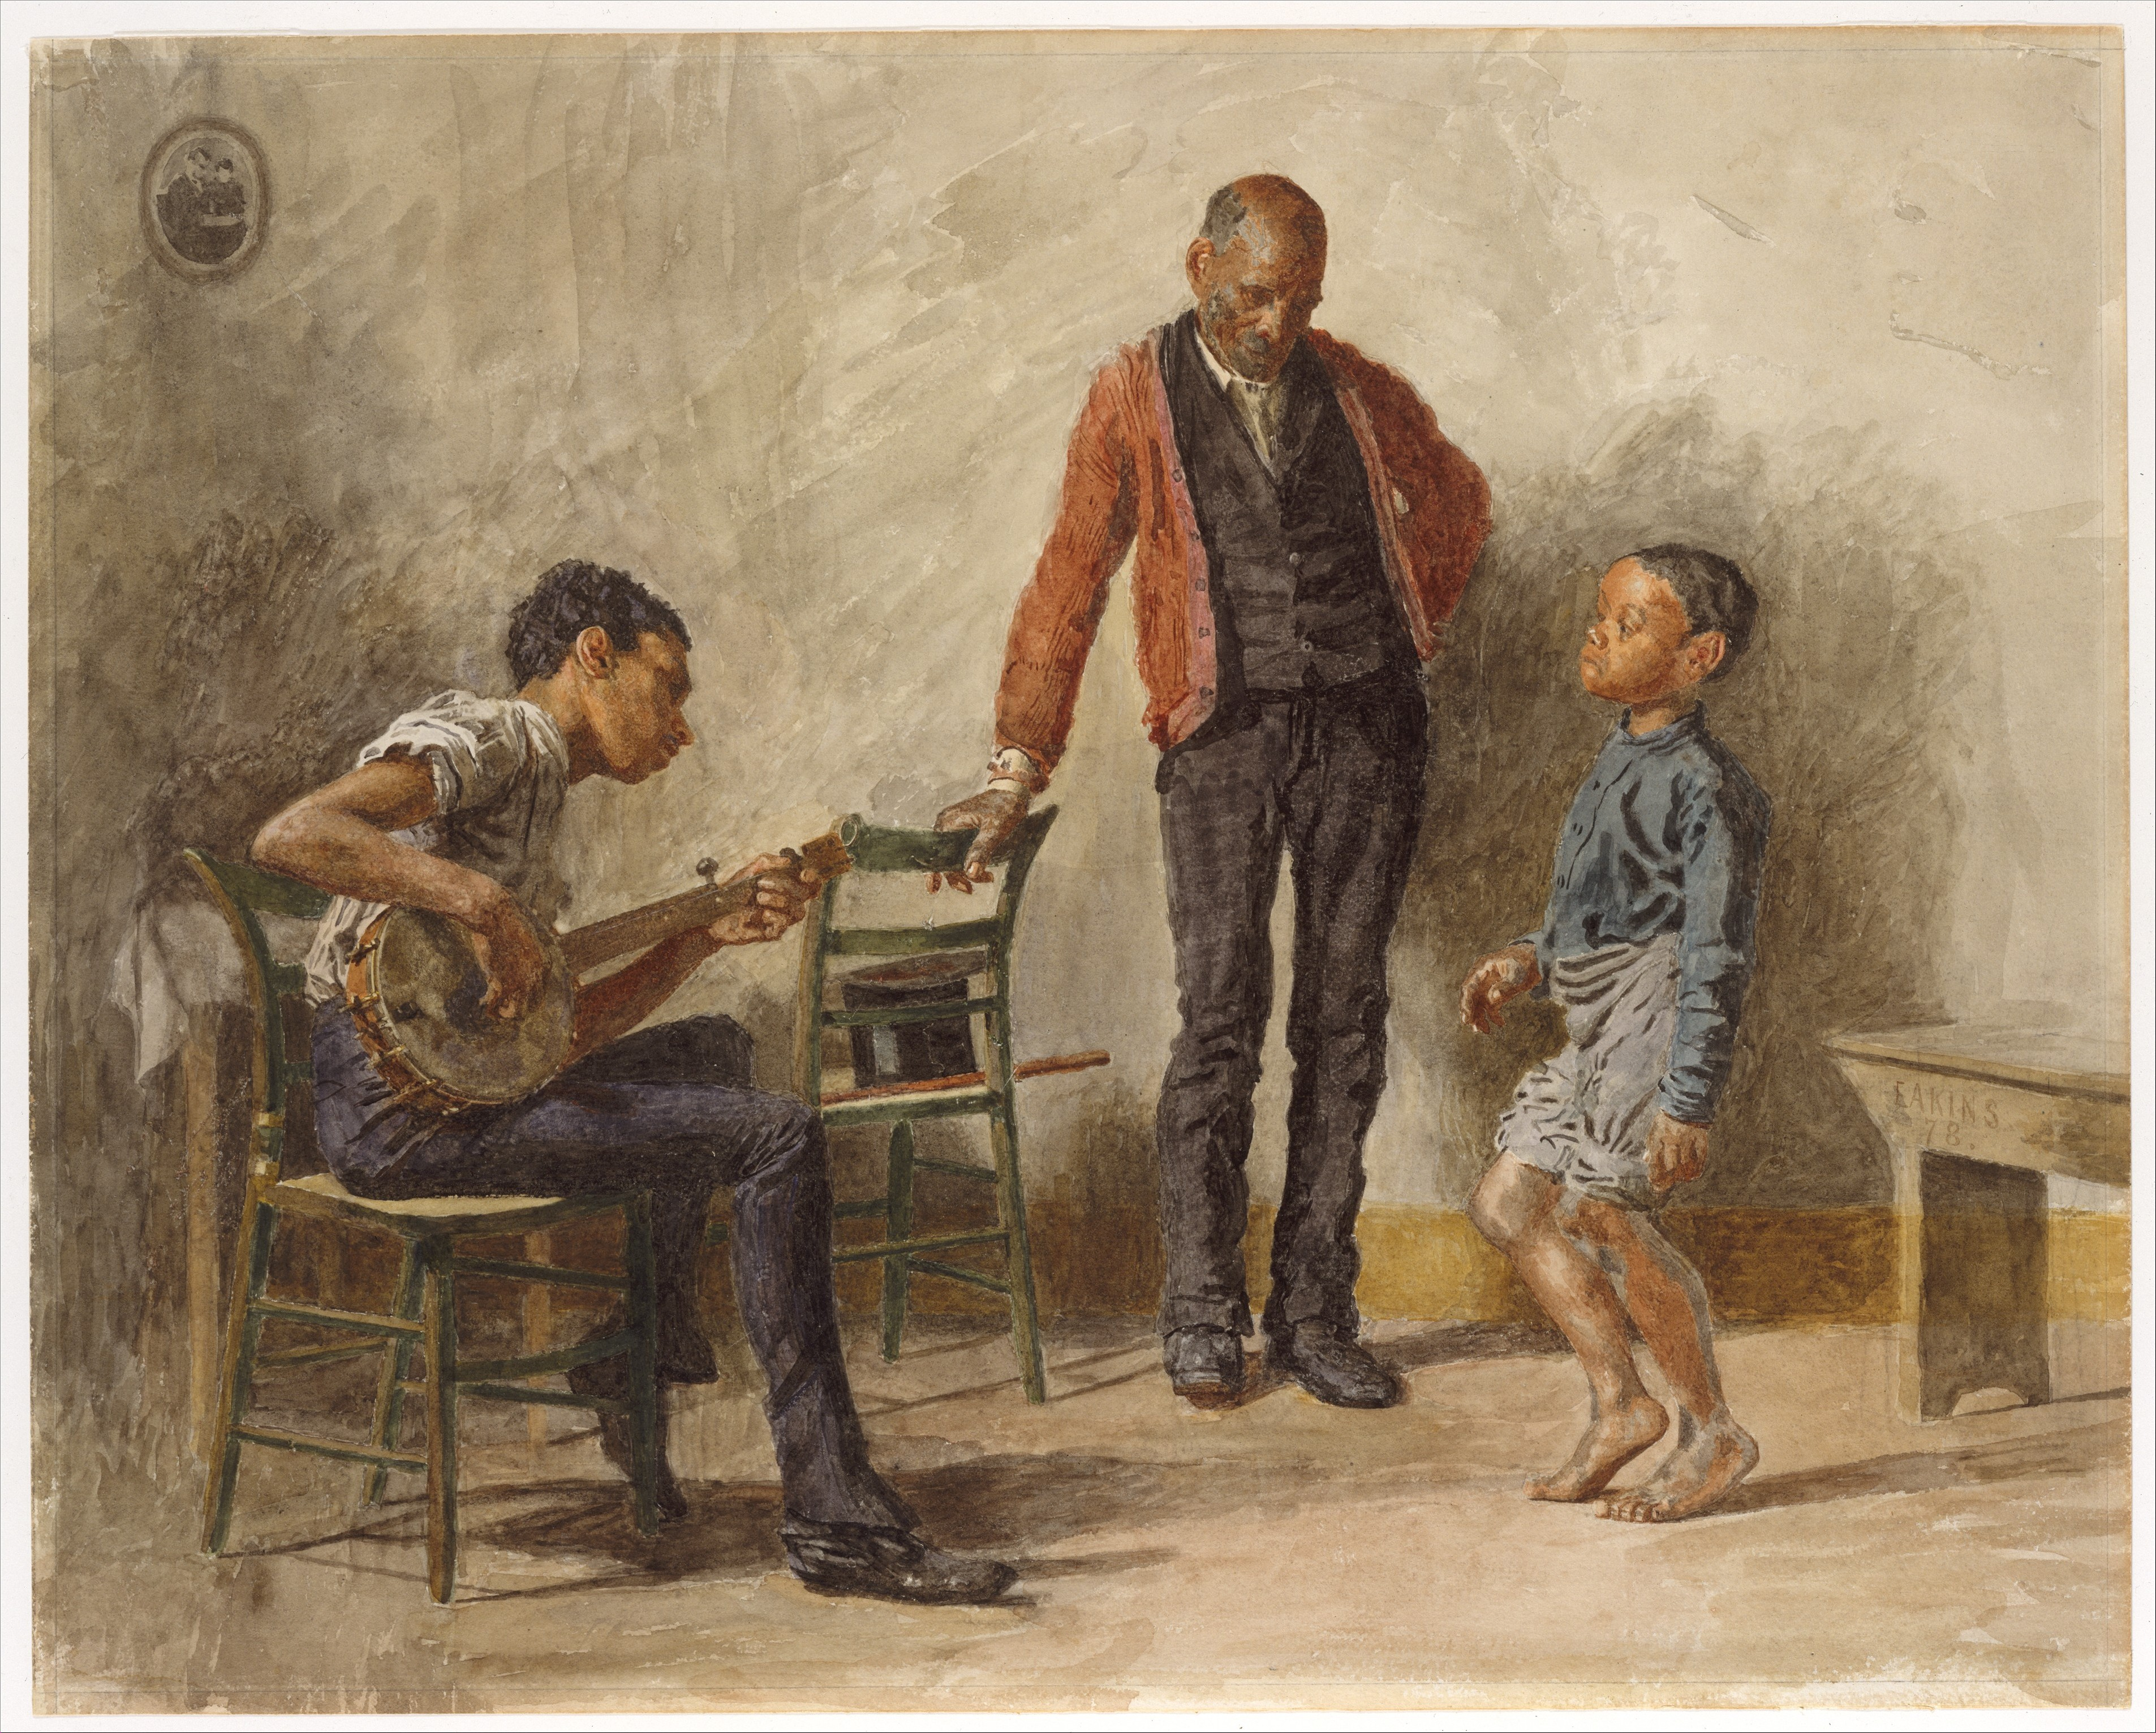 Eakins_1.jpg Thomas Eakins, The Dancing Lesson, 1878. Watercolor on off-white wove paper, 18 1/8 x 22 7/8 inches. Collection of the Metropolitan Museum of Art, New York; Fletcher Fund, 1925, 25.97.1.